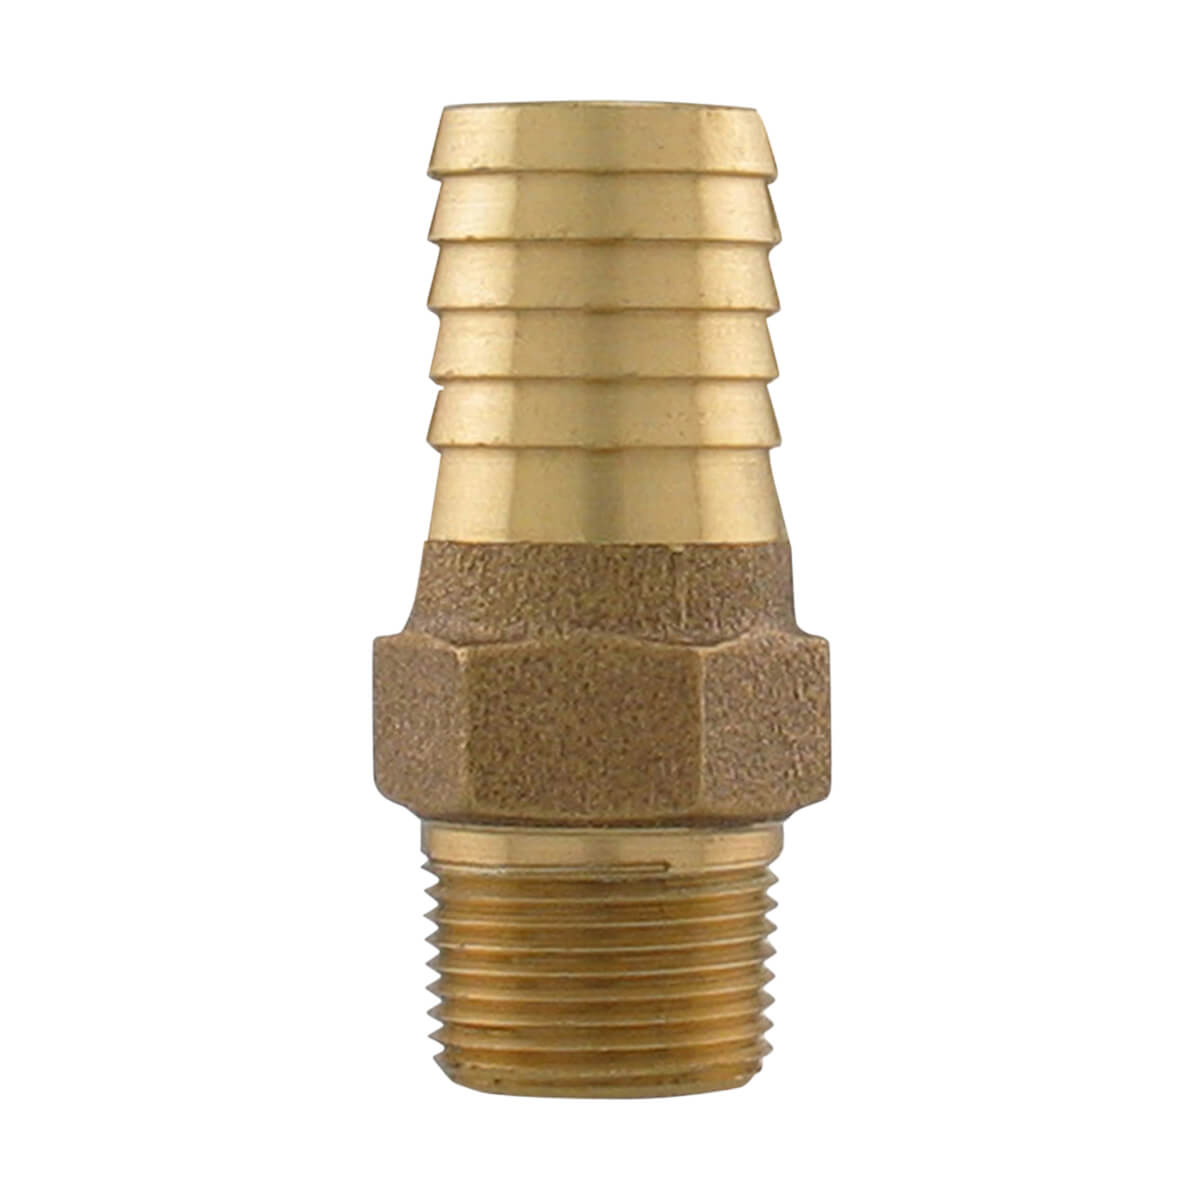 Bronze Male Adapter - 1-in MIP x 1-1/4-in INS